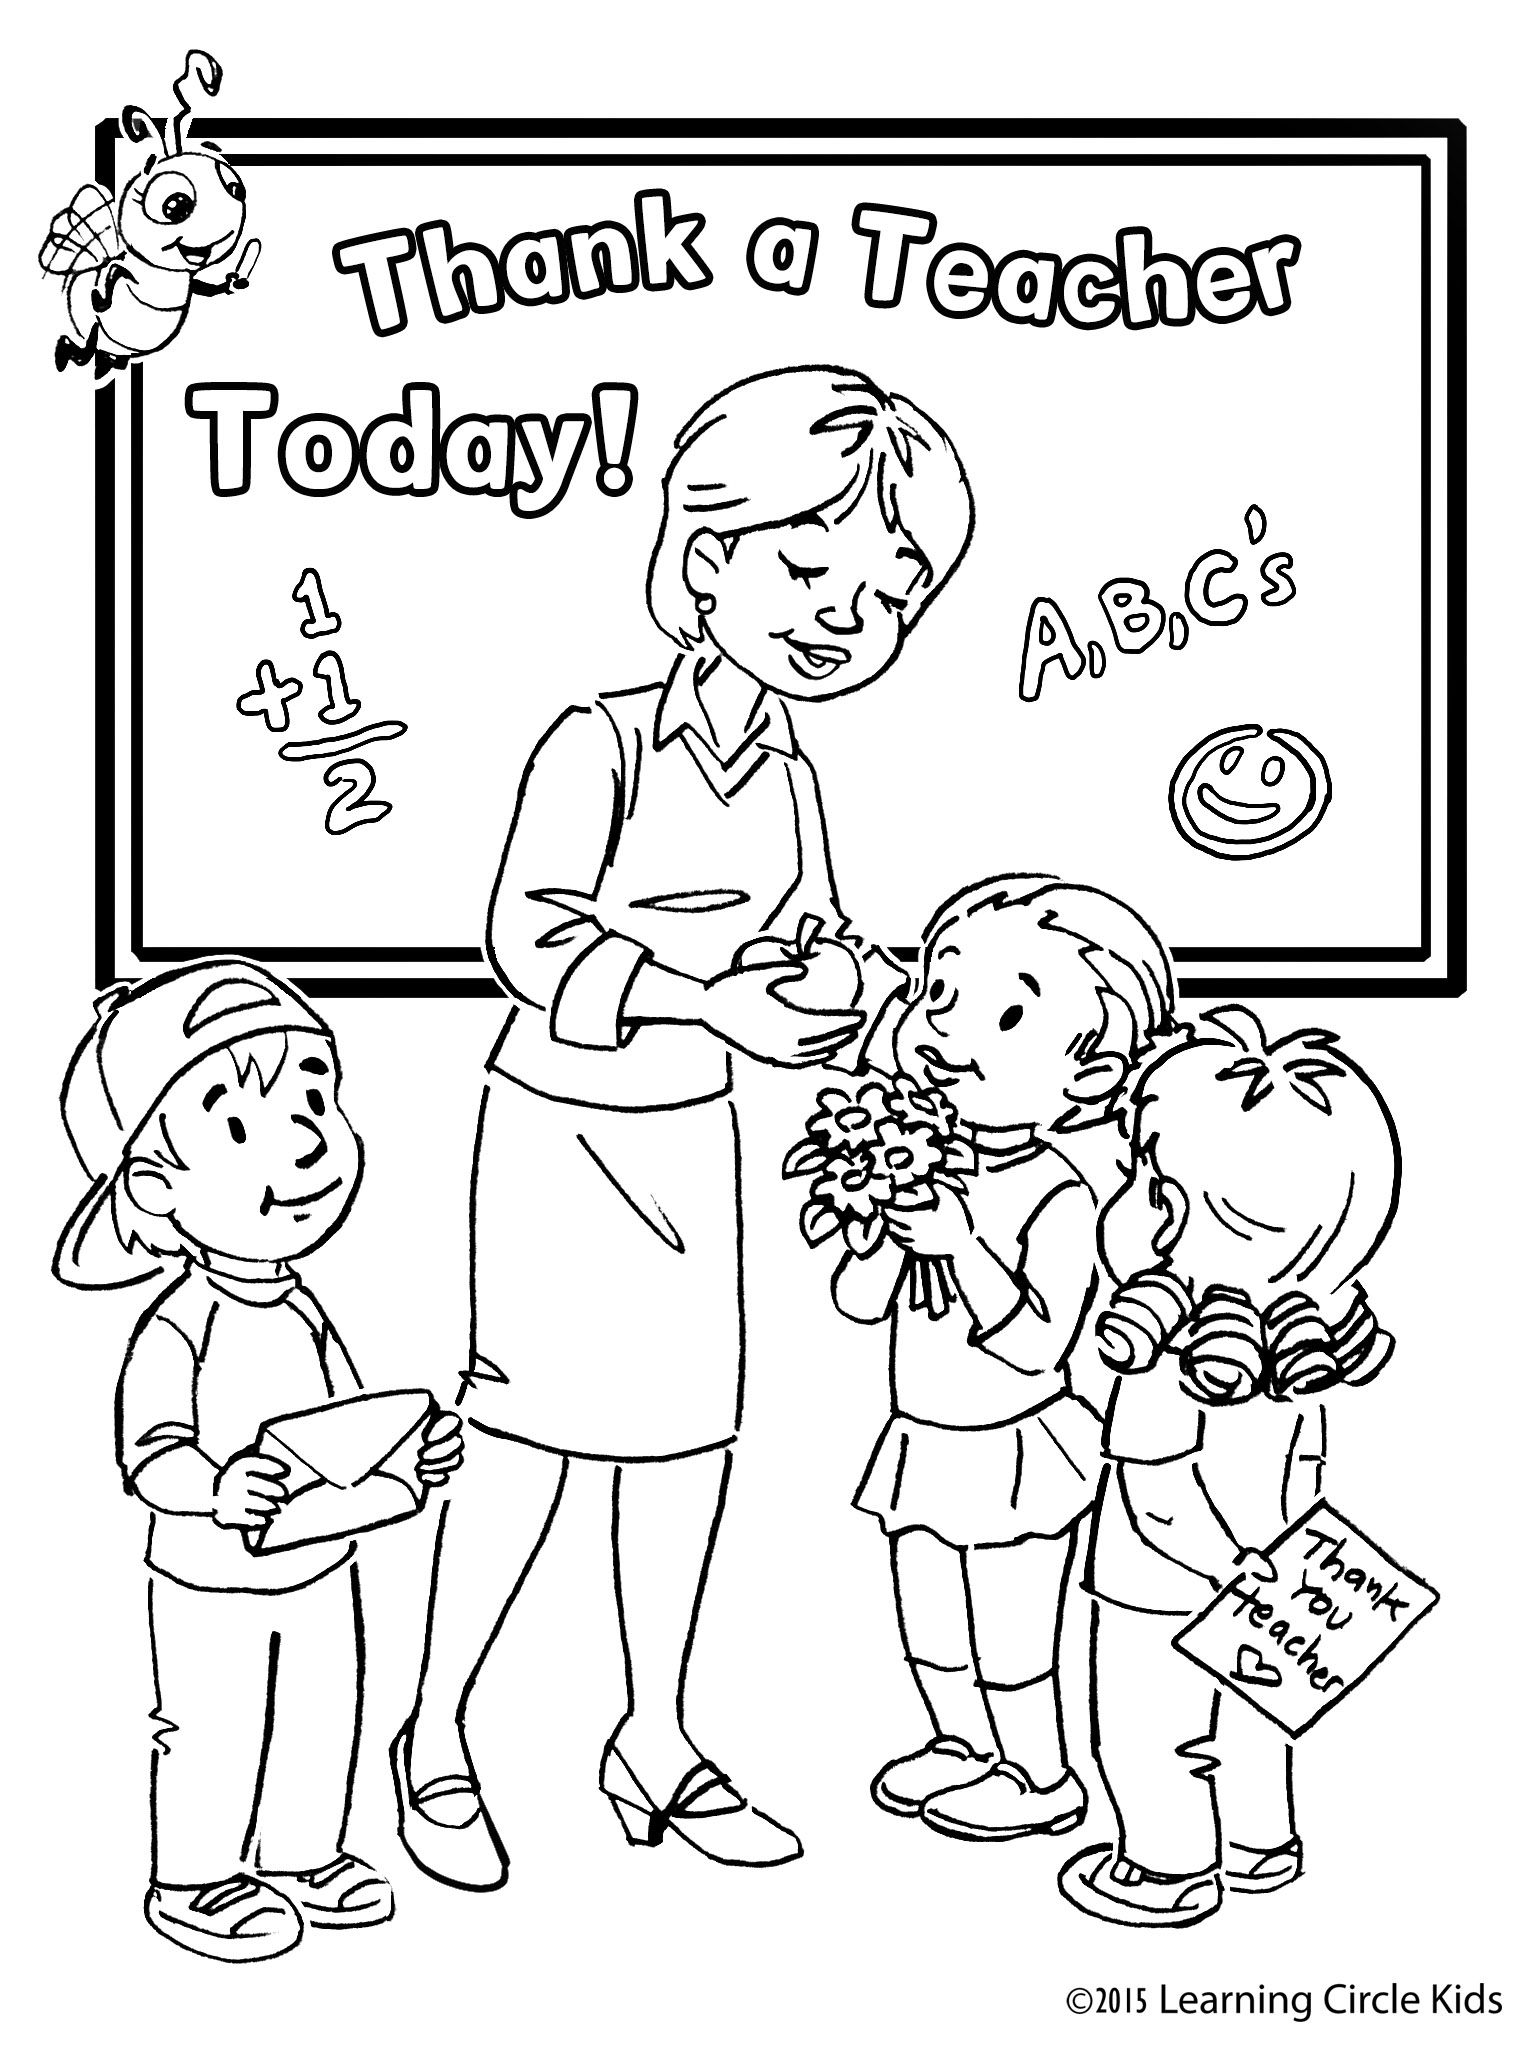 free kids coloring page for teacher appreciation day